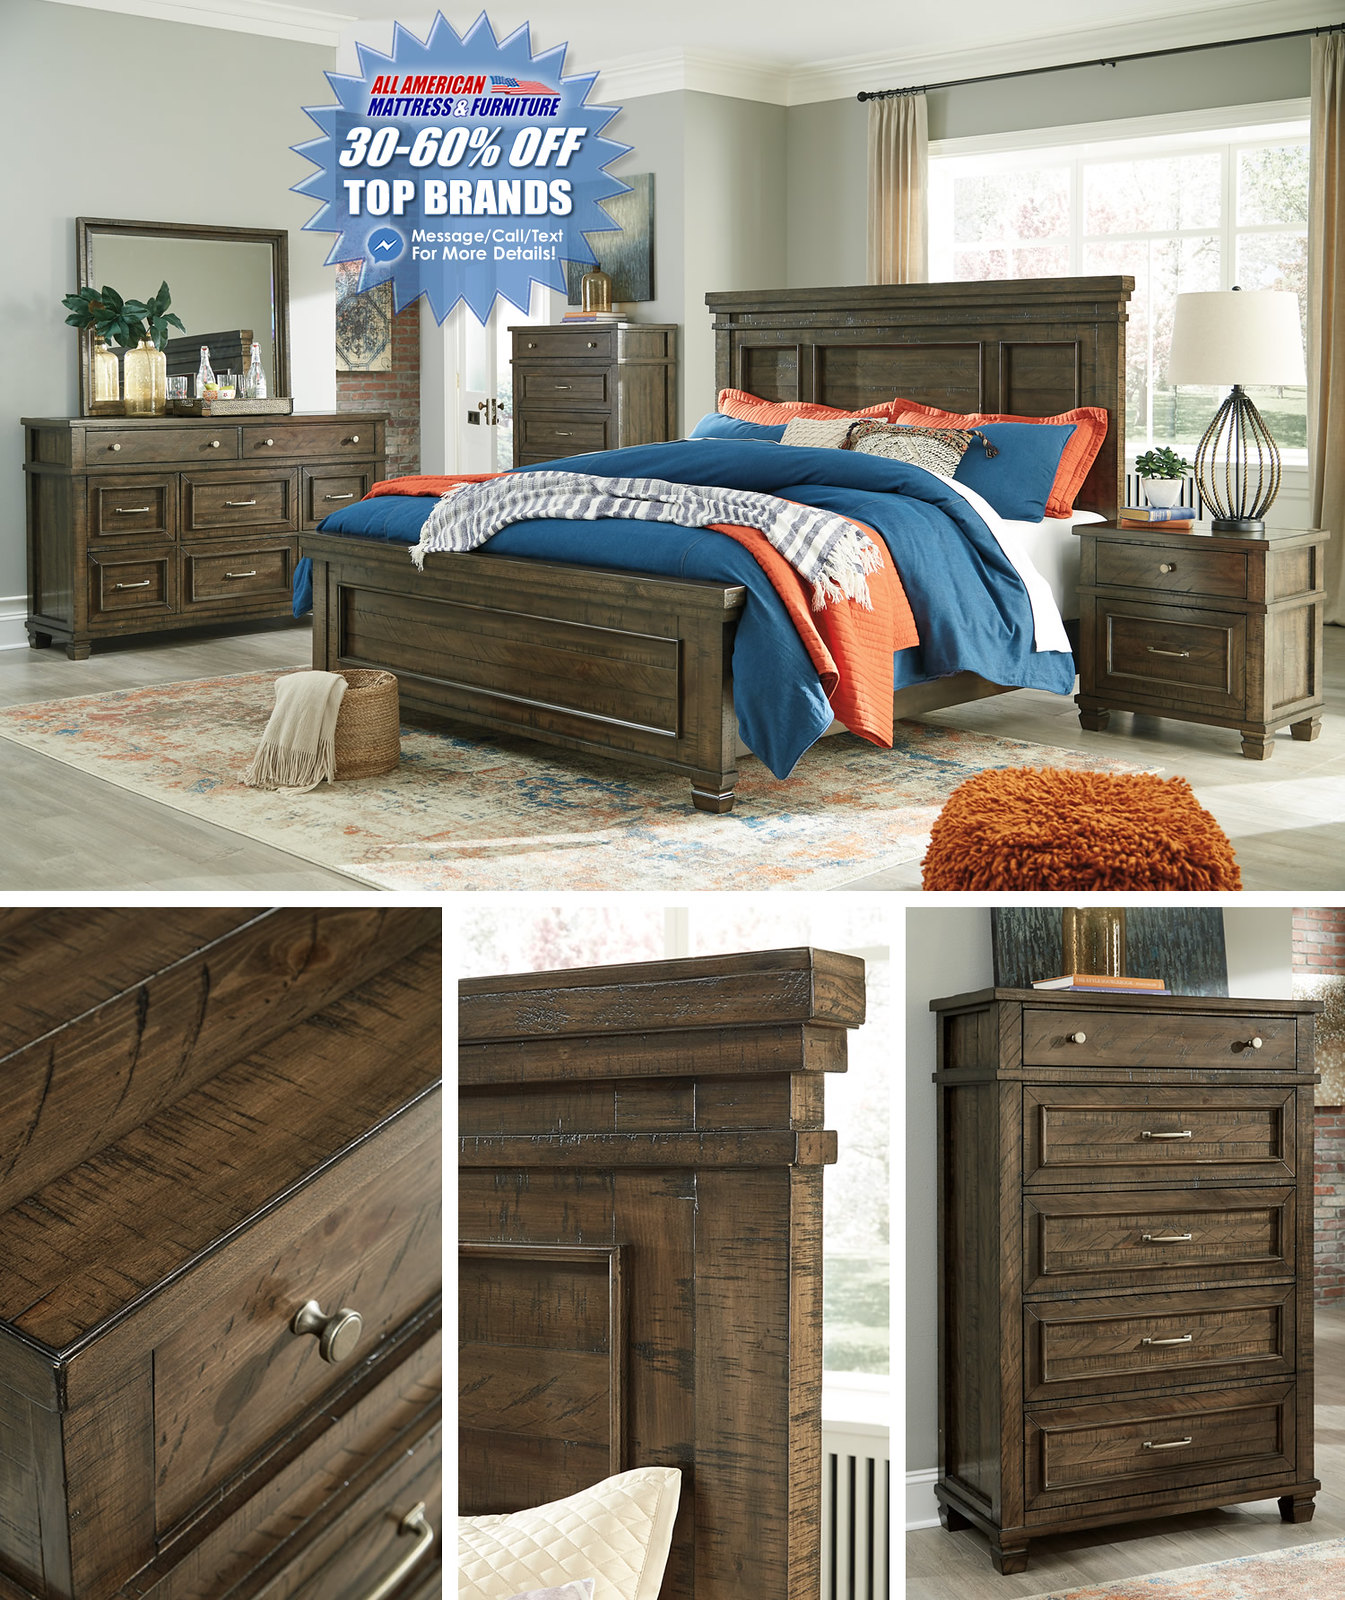 Darloni Weathered Brown Bedroom Set_B734-31-36-46-58-56-97-92-Q742_layoutStamped